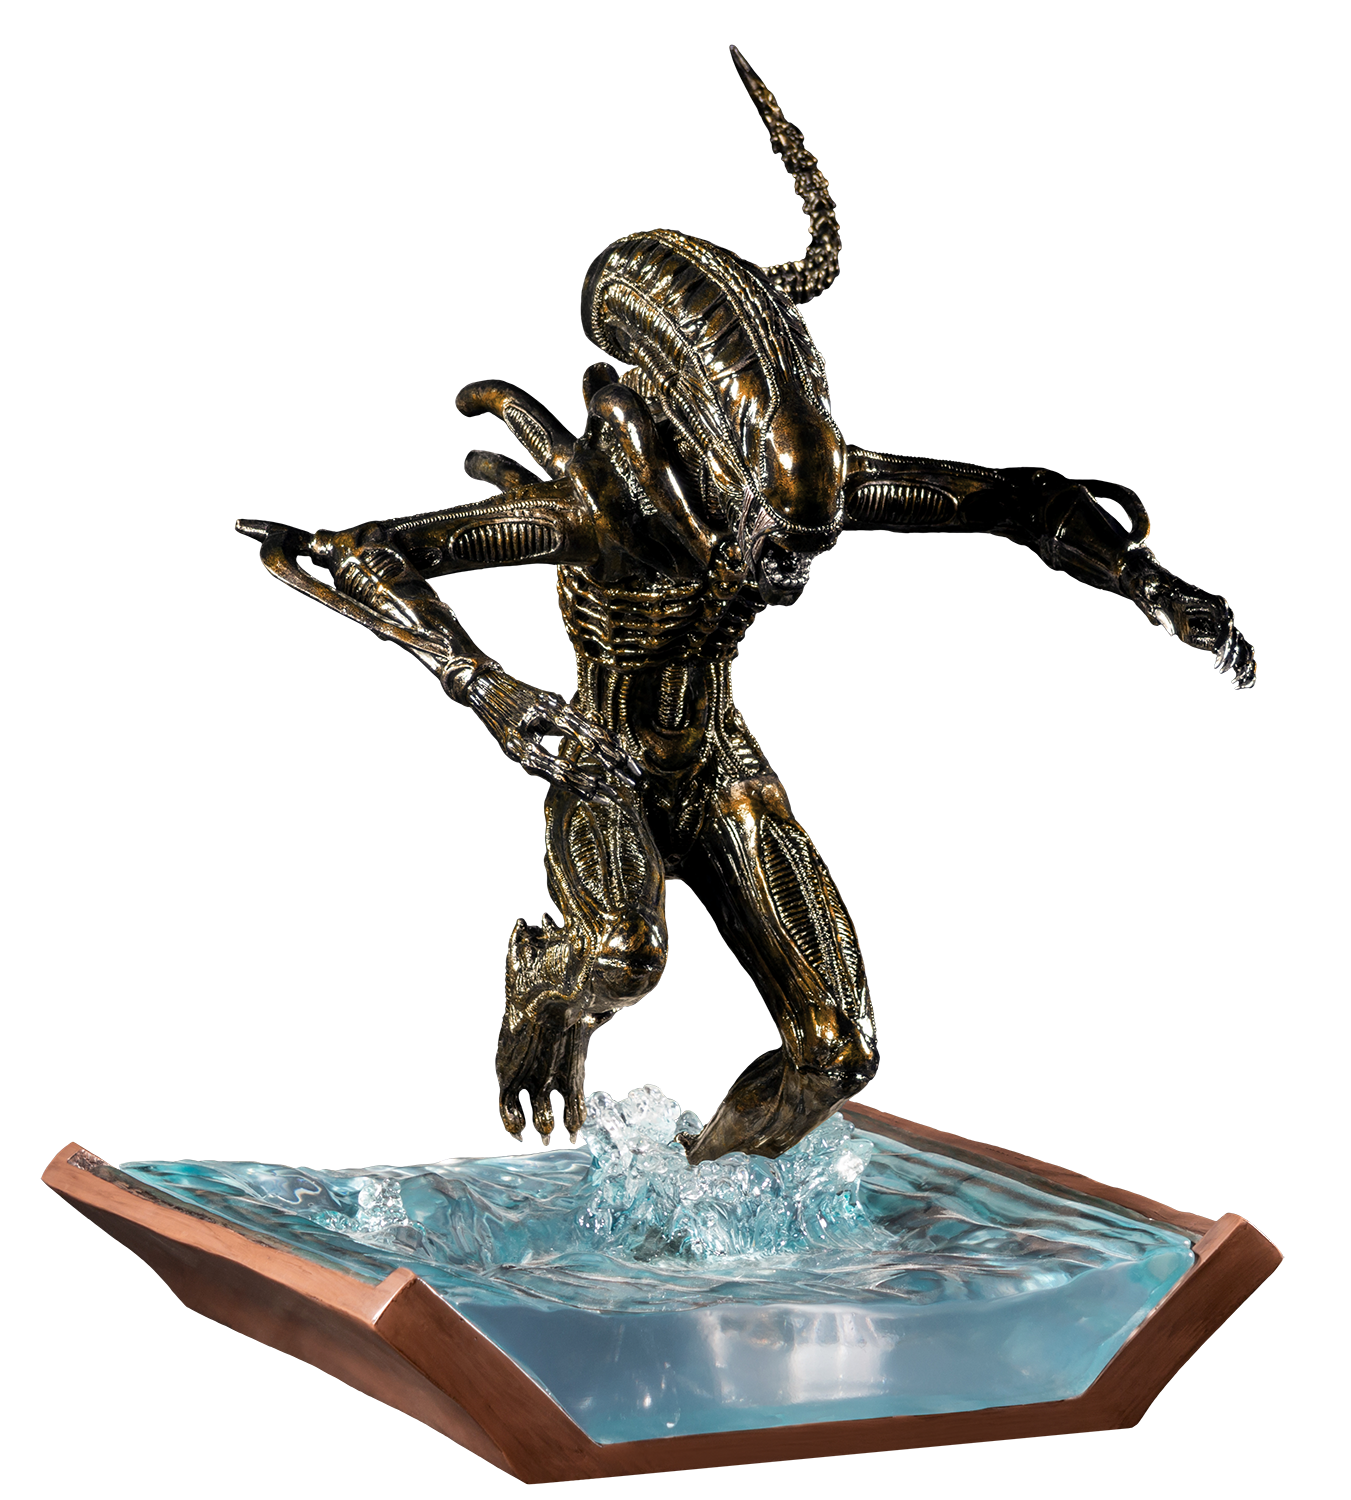 IKO1605-Alien-in-Water-Statue-New-Paint-2-318.png